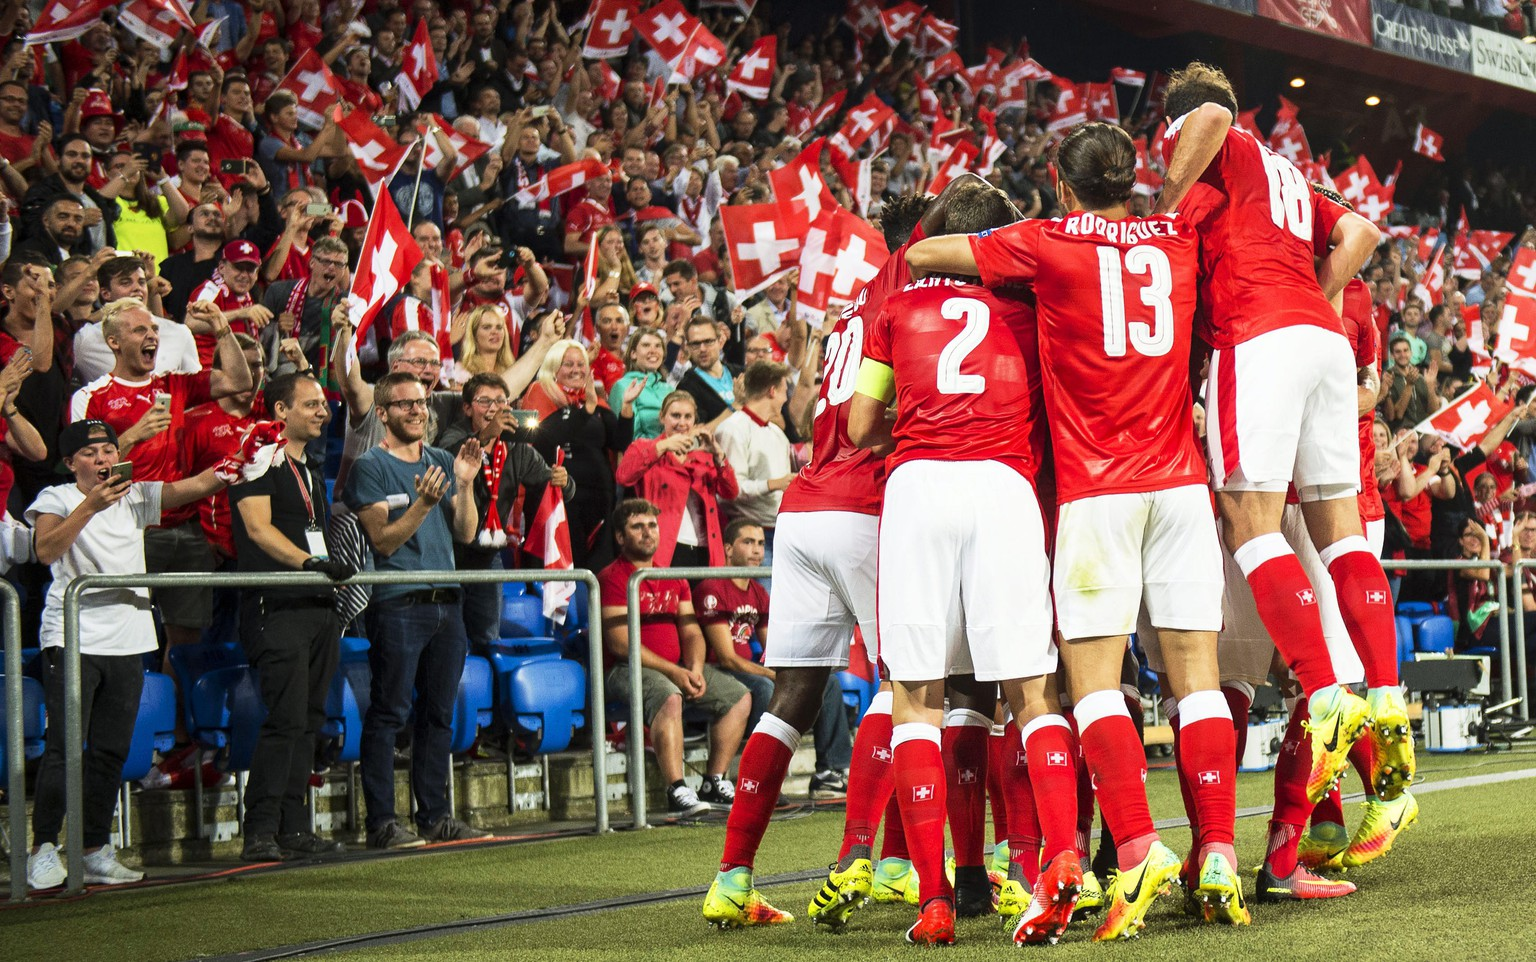 epa05527849 Swiss players celebrate their opening goal during the FIFA World Cup 2018 group B qualifying soccer match between Switzerland and Portugal at the St. Jakob-Park stadium in Basel, Switzerland, 06 September 2016. Switzerland won 2-0.  EPA/ENNIO LEANZA